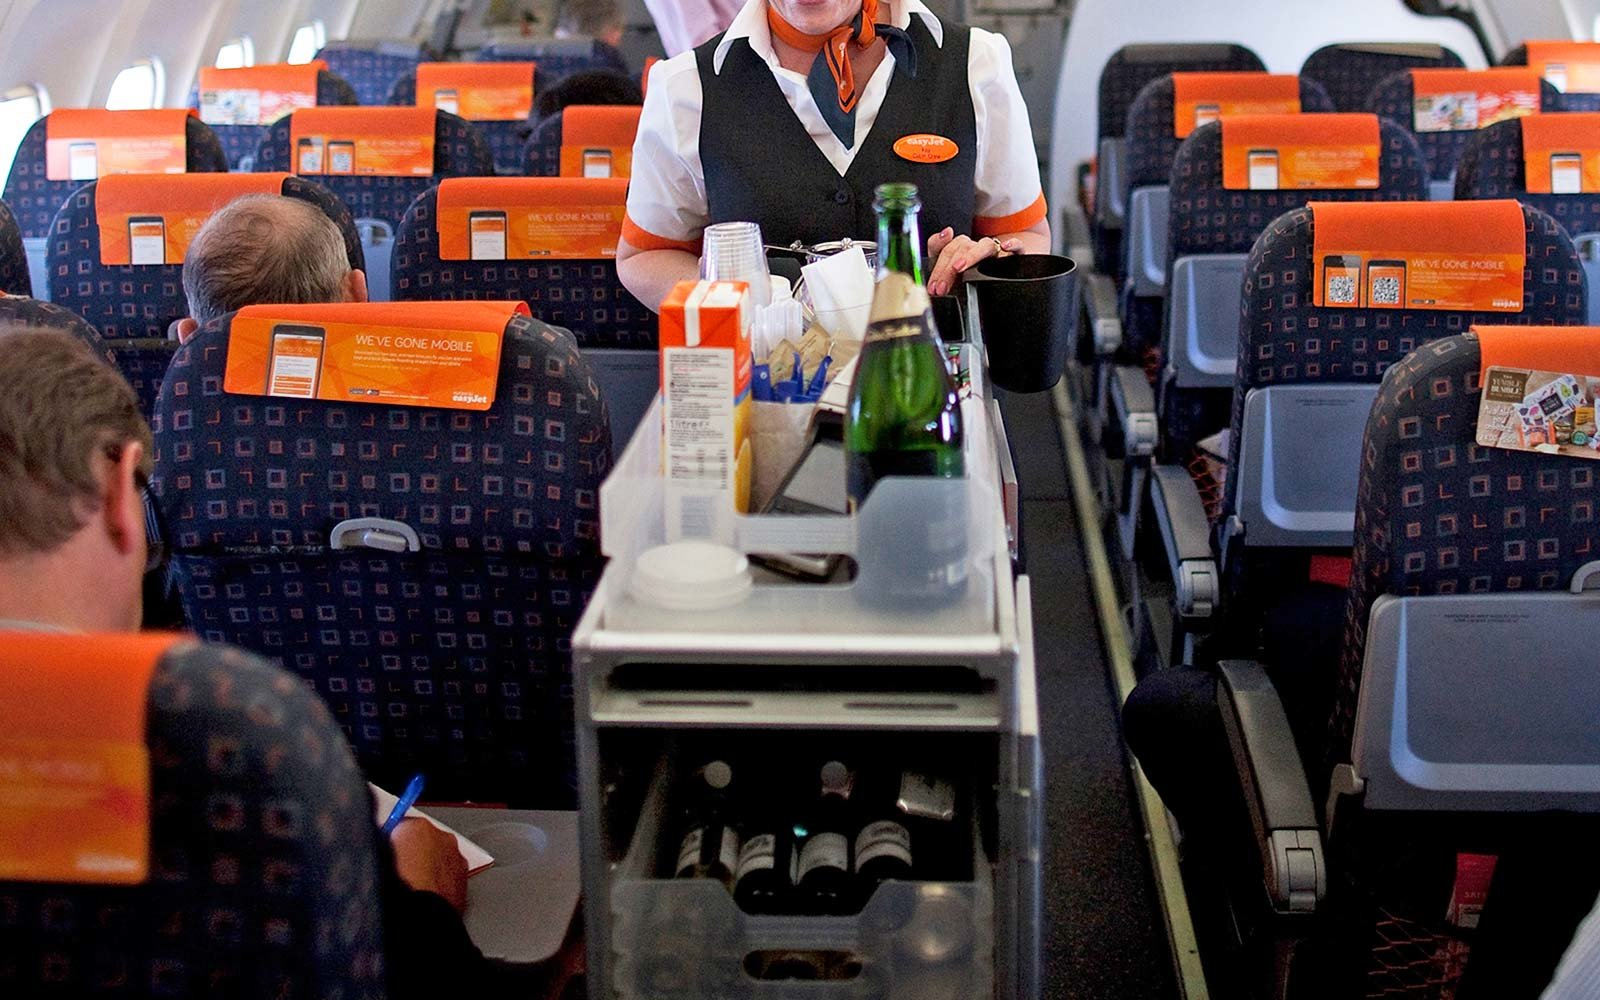 An EasyJet flight attendant serves travelers during a flight from London Southend Airport to El Prat airport in Barcelona, Spain